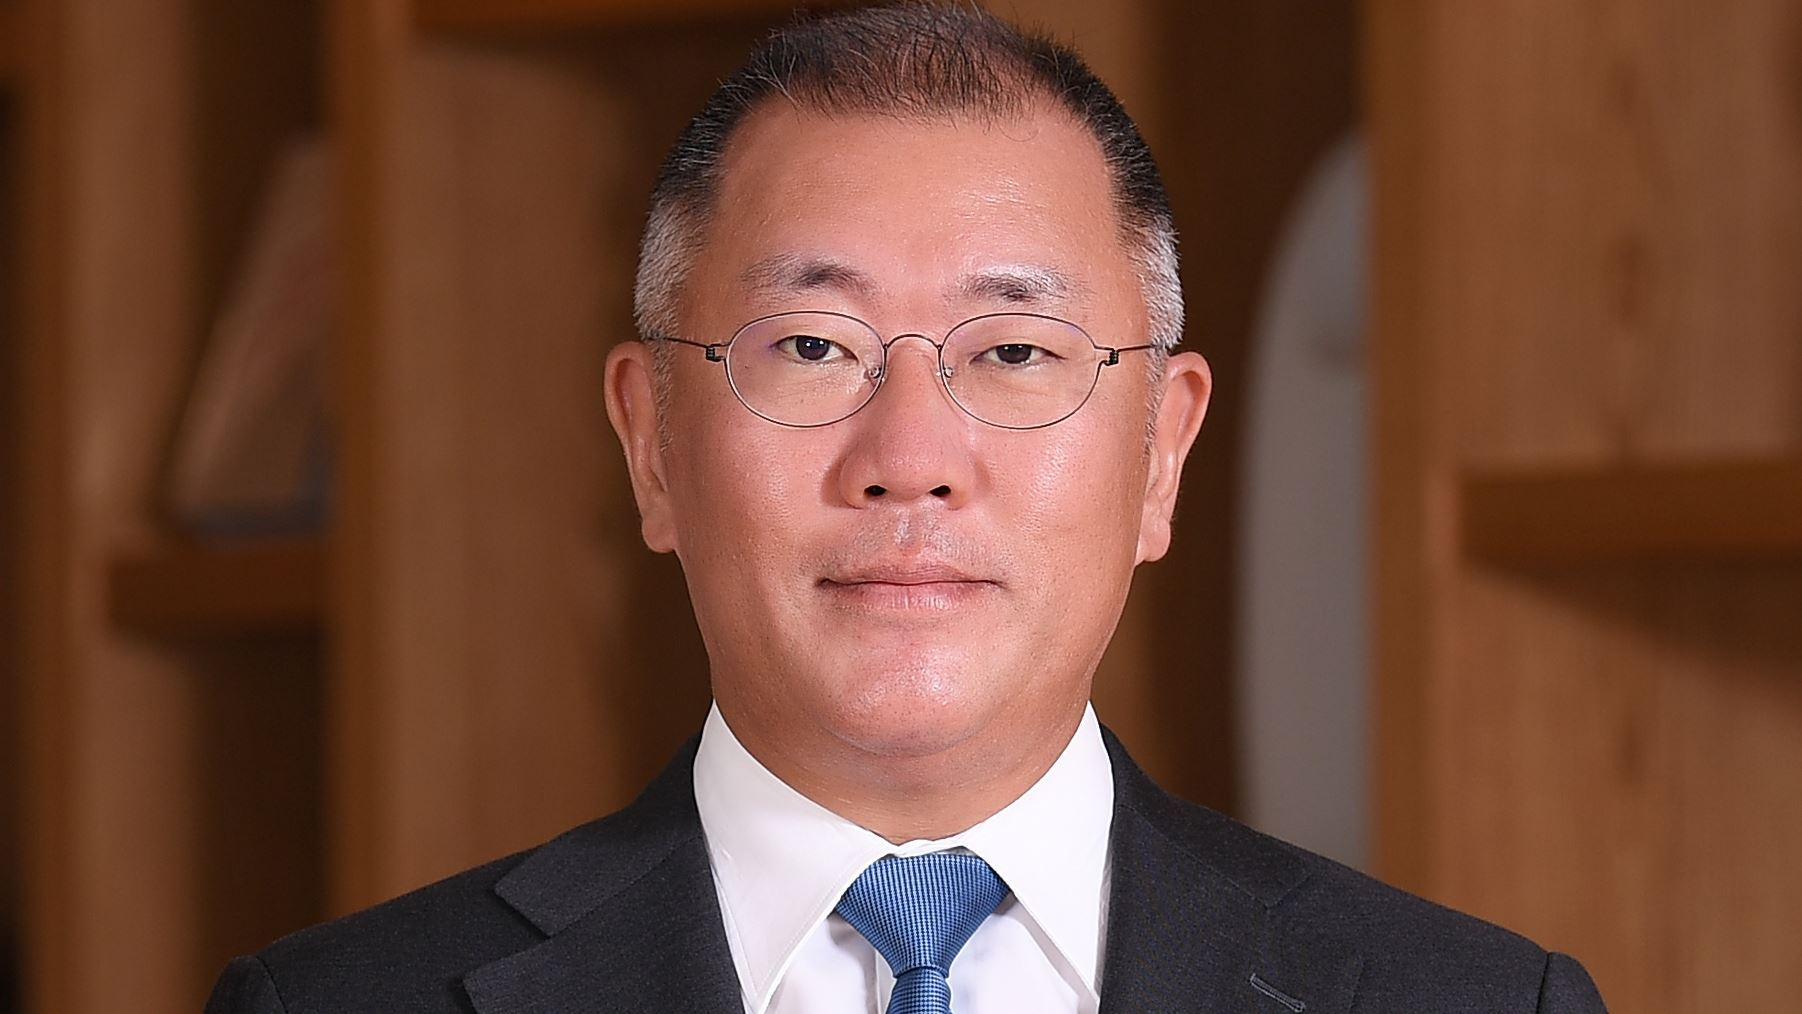 Euisun Chung Inaugurated as Chairman of Hyundai Motor Group, Opening a New Chapter in History - Image 3